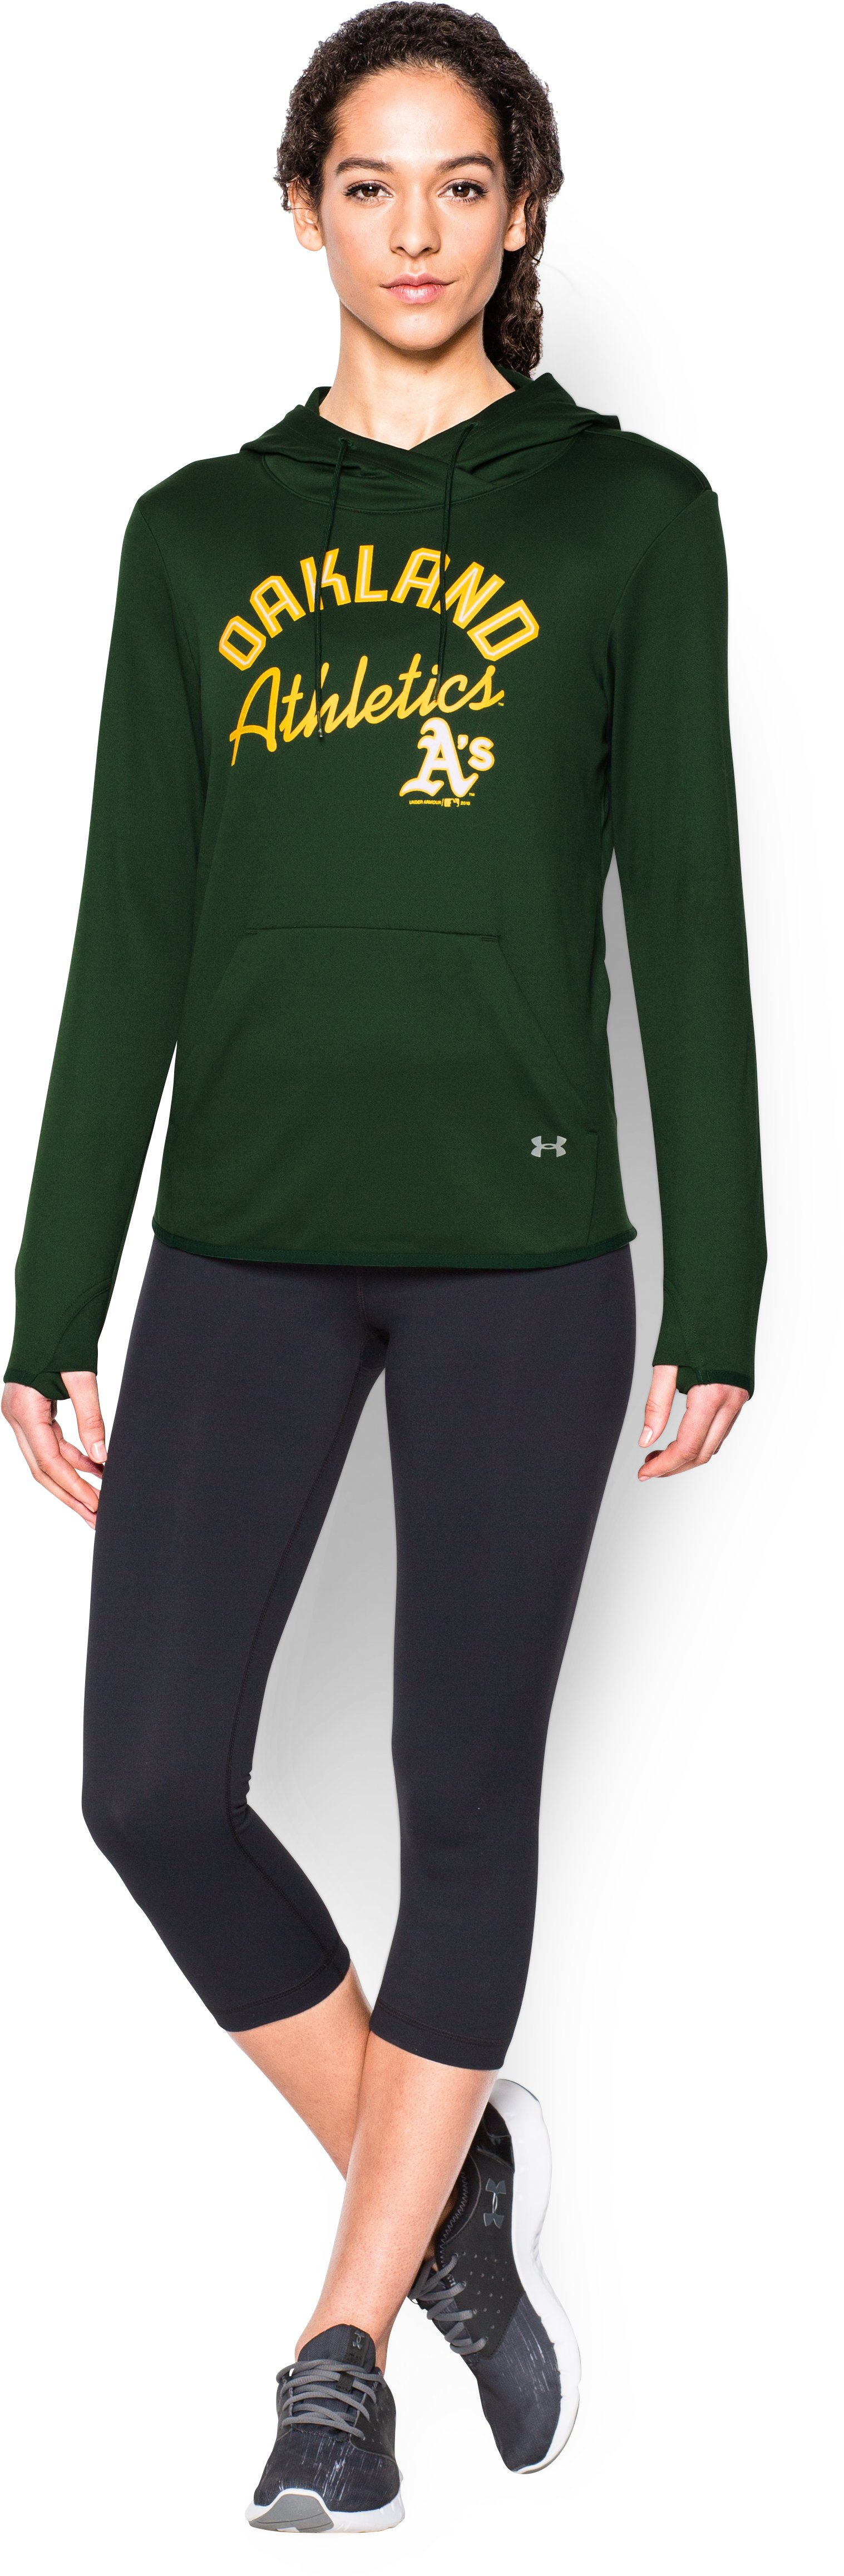 Women's Oakland Athletics UA French Terry Hoodie, Forest Green